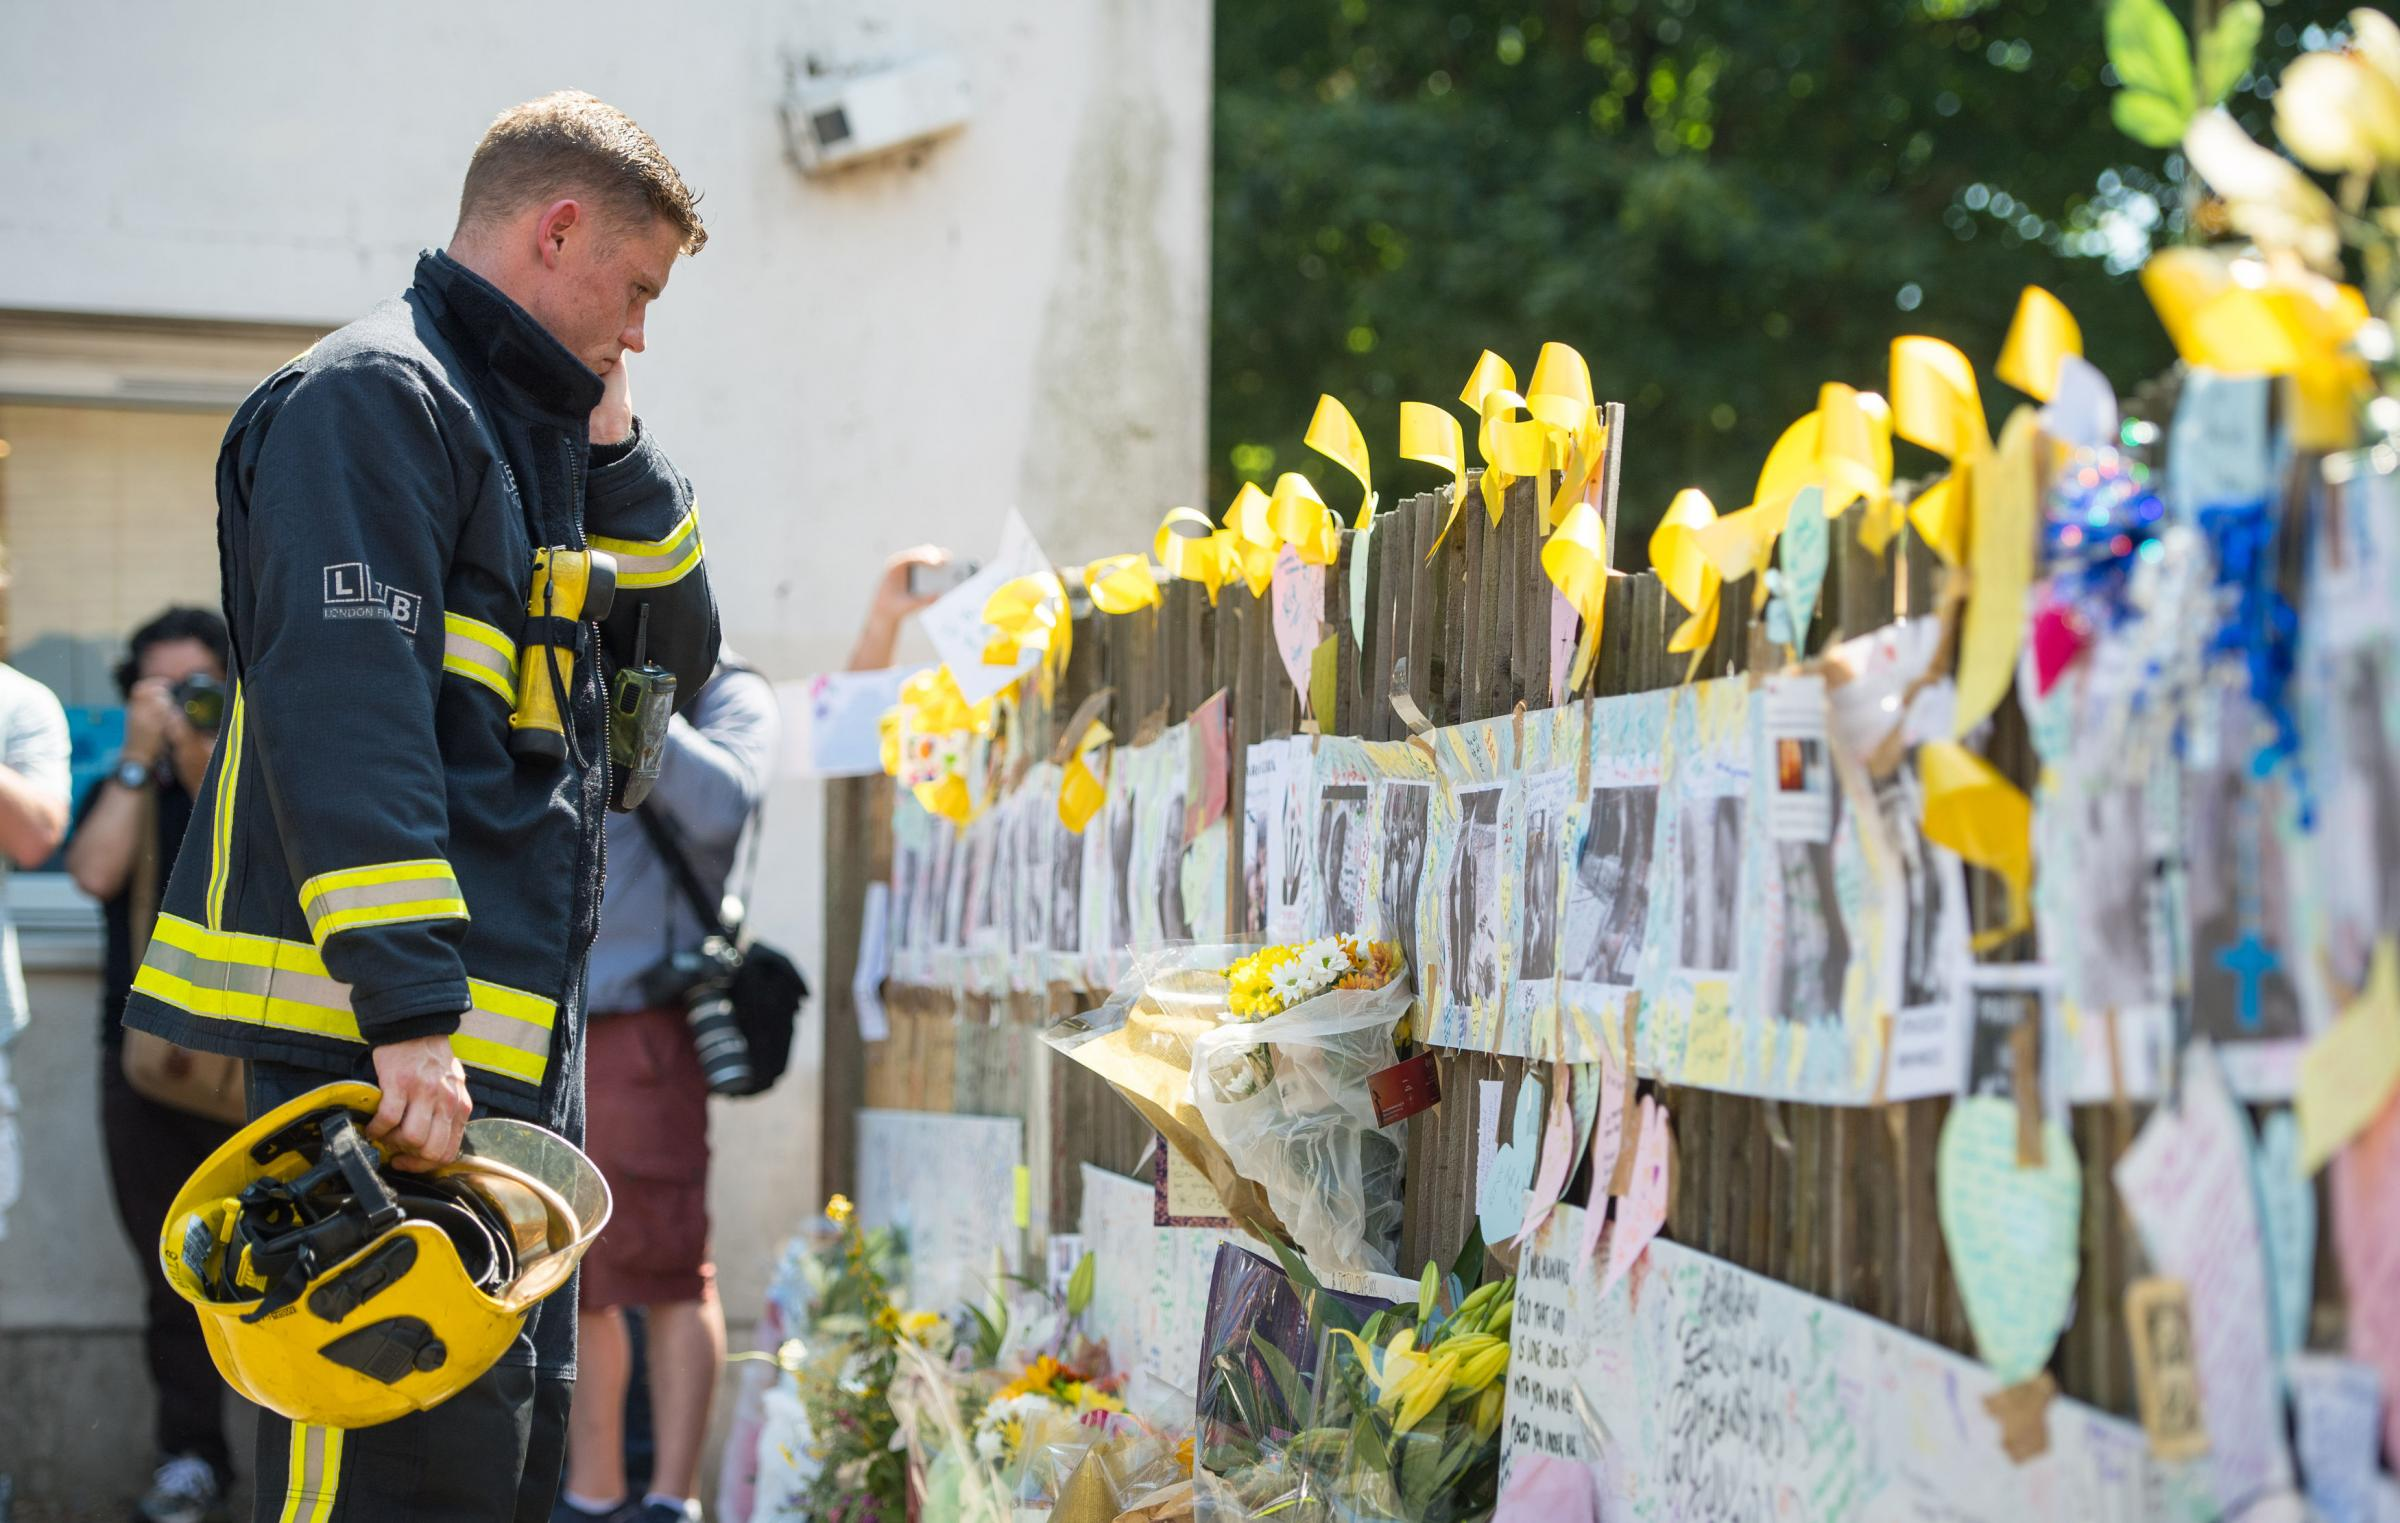 A firefighter views tributes after observing a minute's silence at Latymer Community Centre, near to Grenfell Tower in west London, five days after the fire.Picture: Dominic Lipinski/PA Wire.